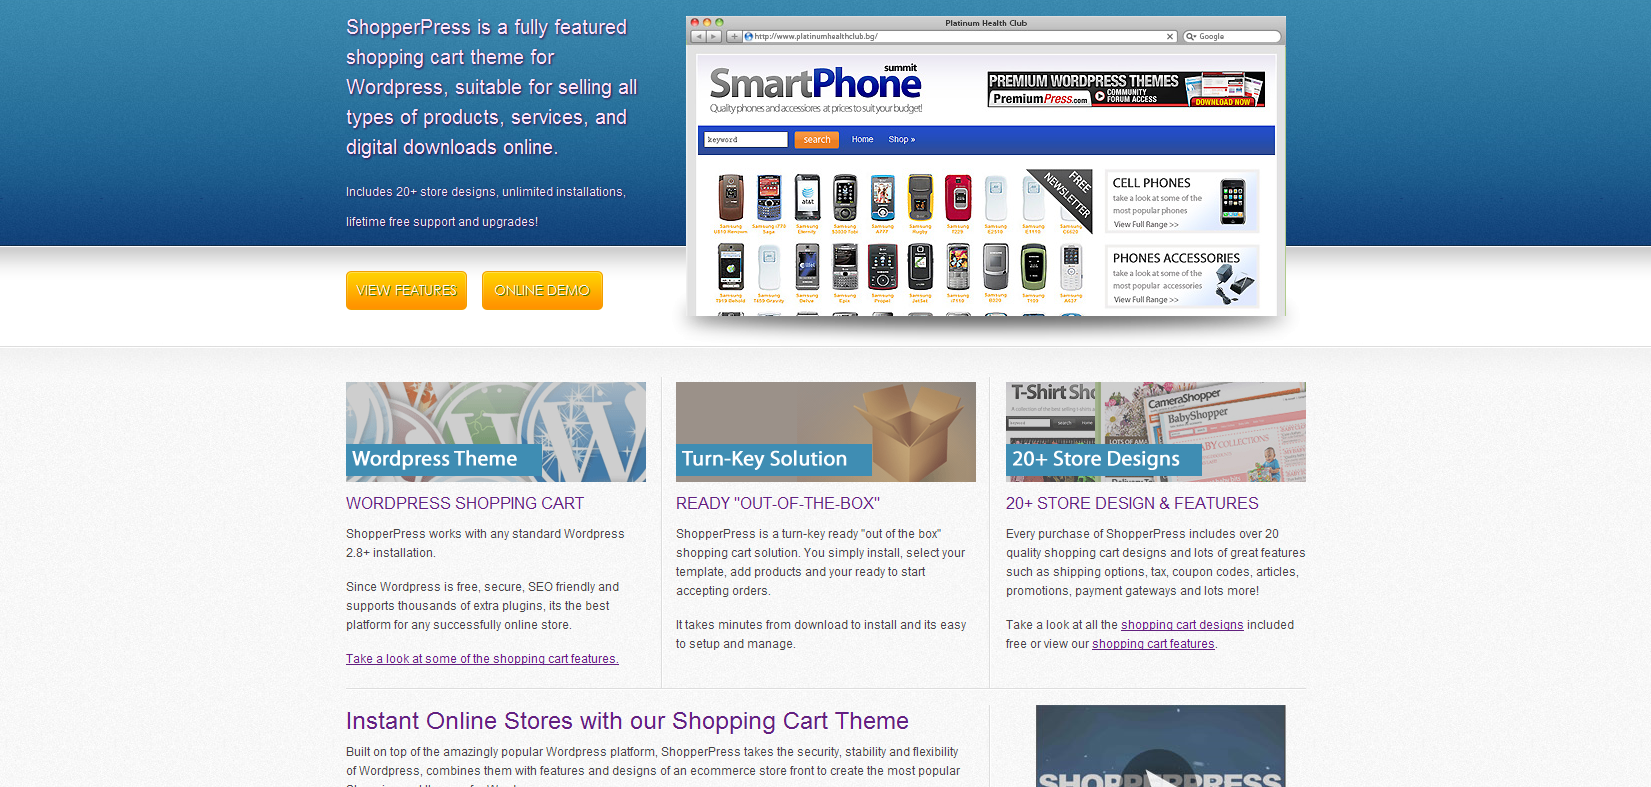 ShopperPress - Shopping theme for Wordpress